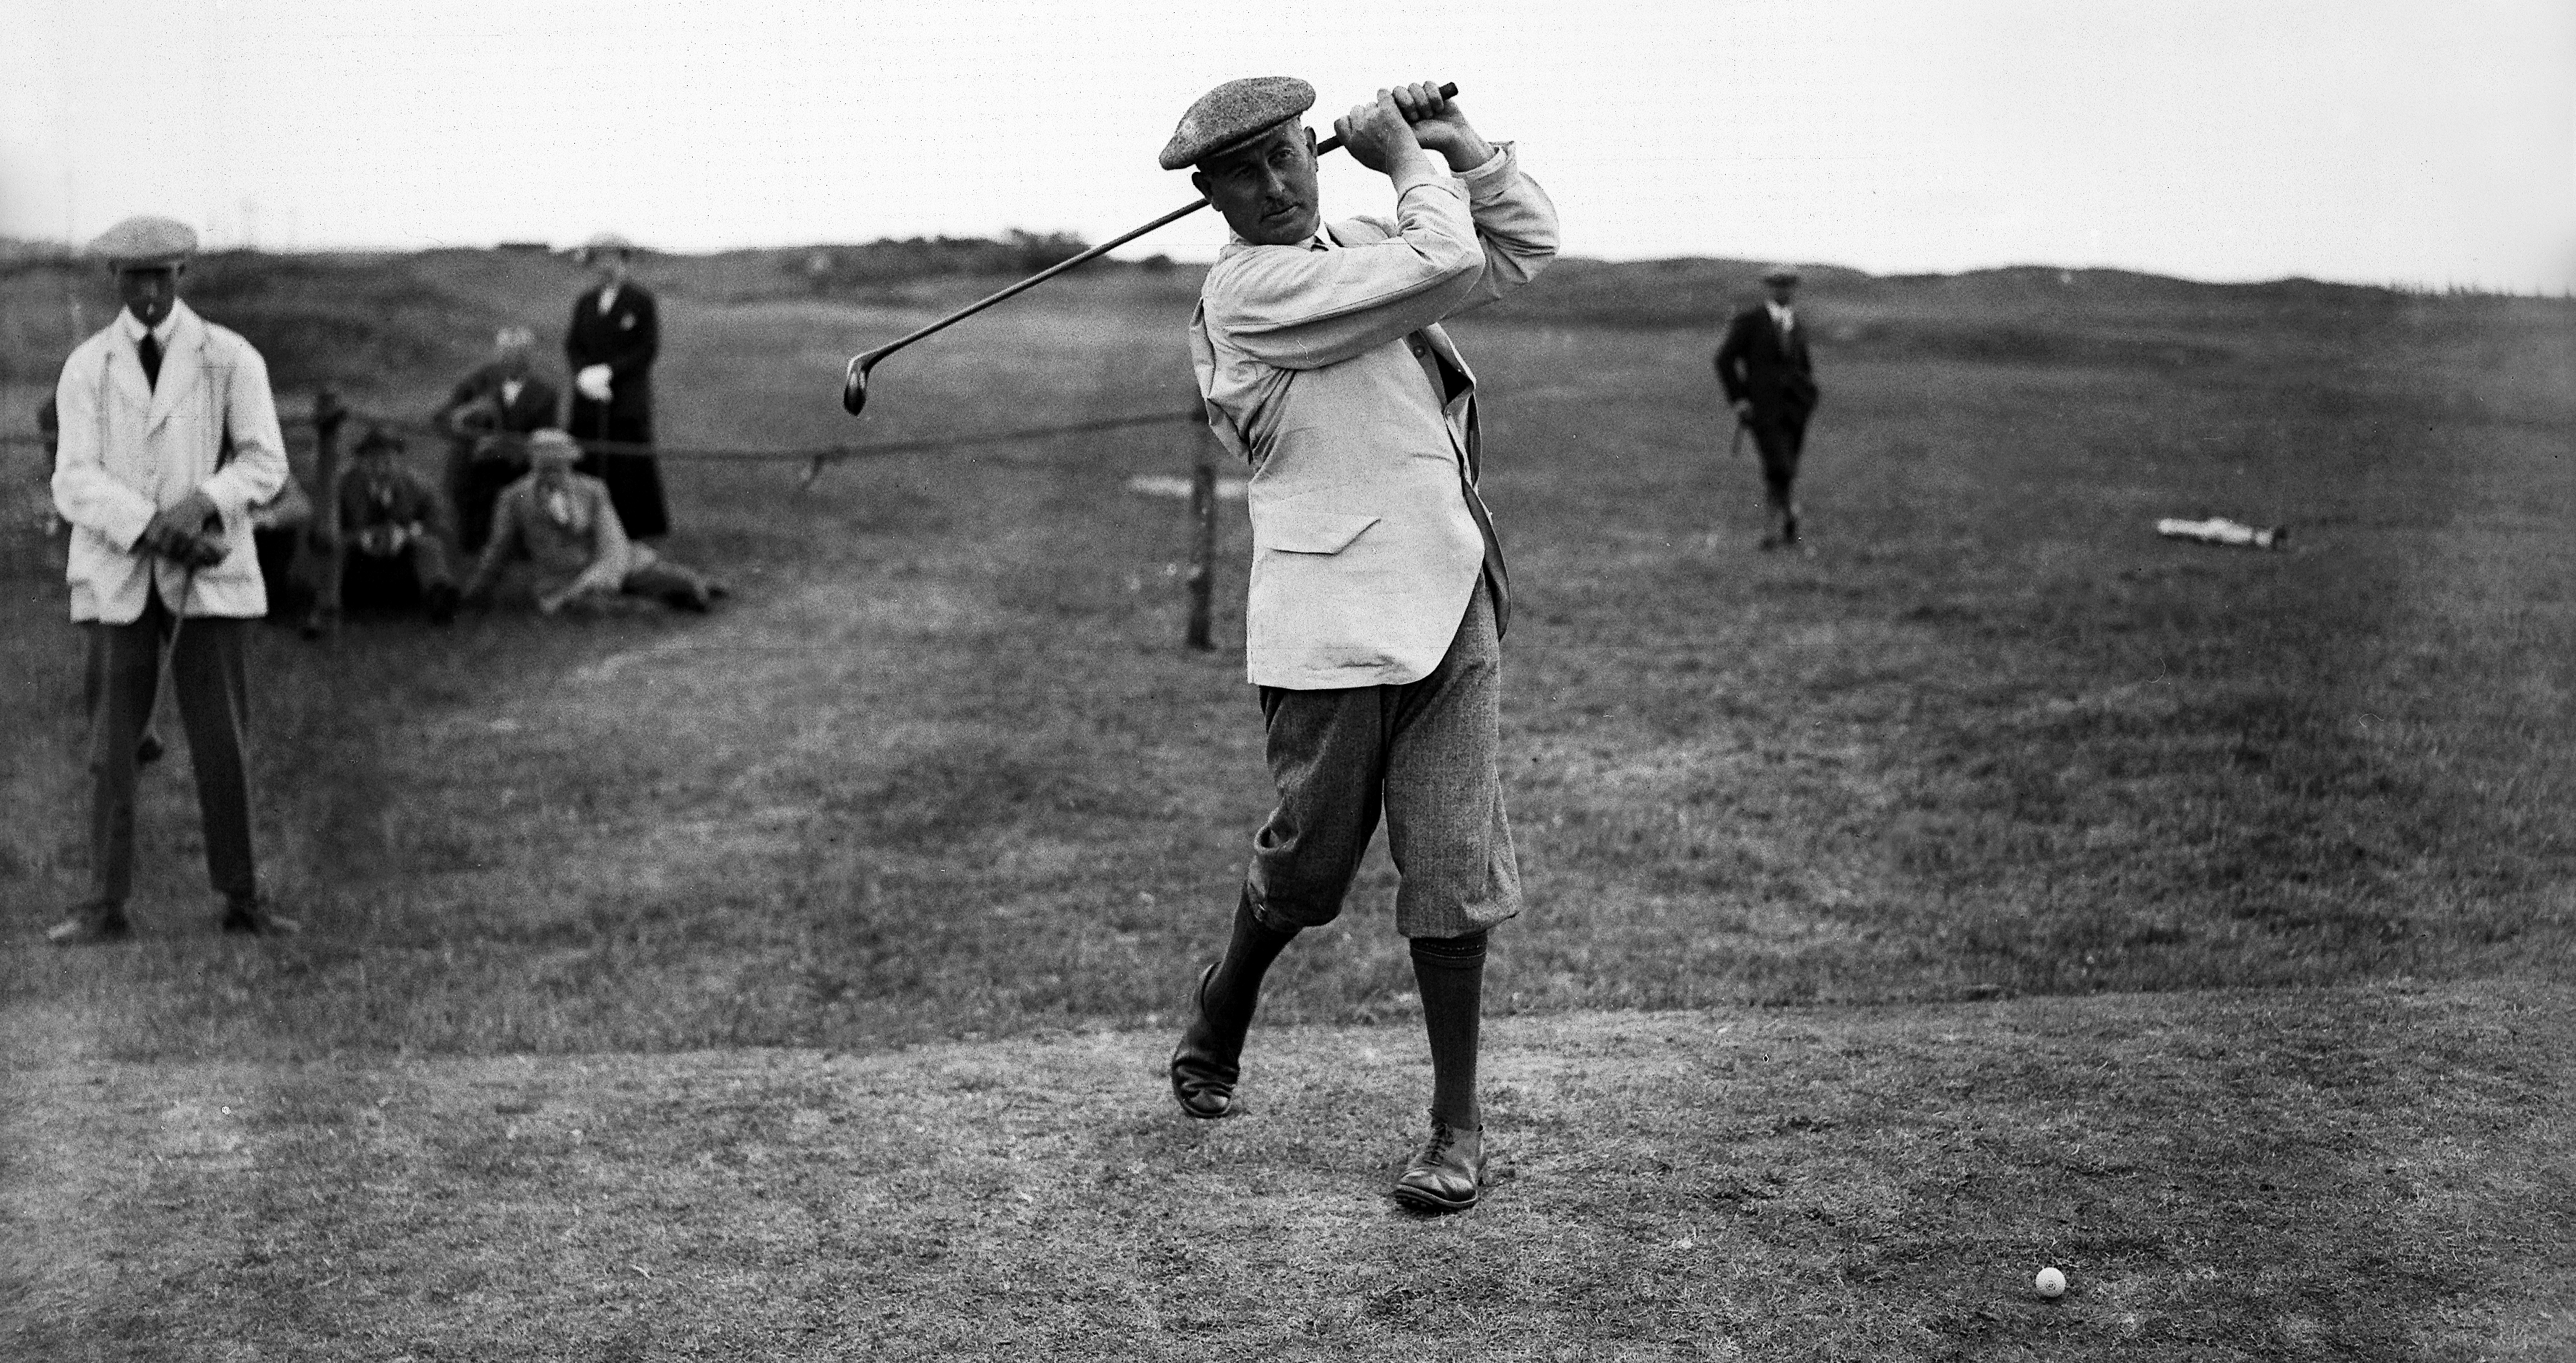 1920: Golfer Harry Vardon (1870 - 1937) at the Open Championship at Deal, Kent. (Photo by Central Press/Getty Images)